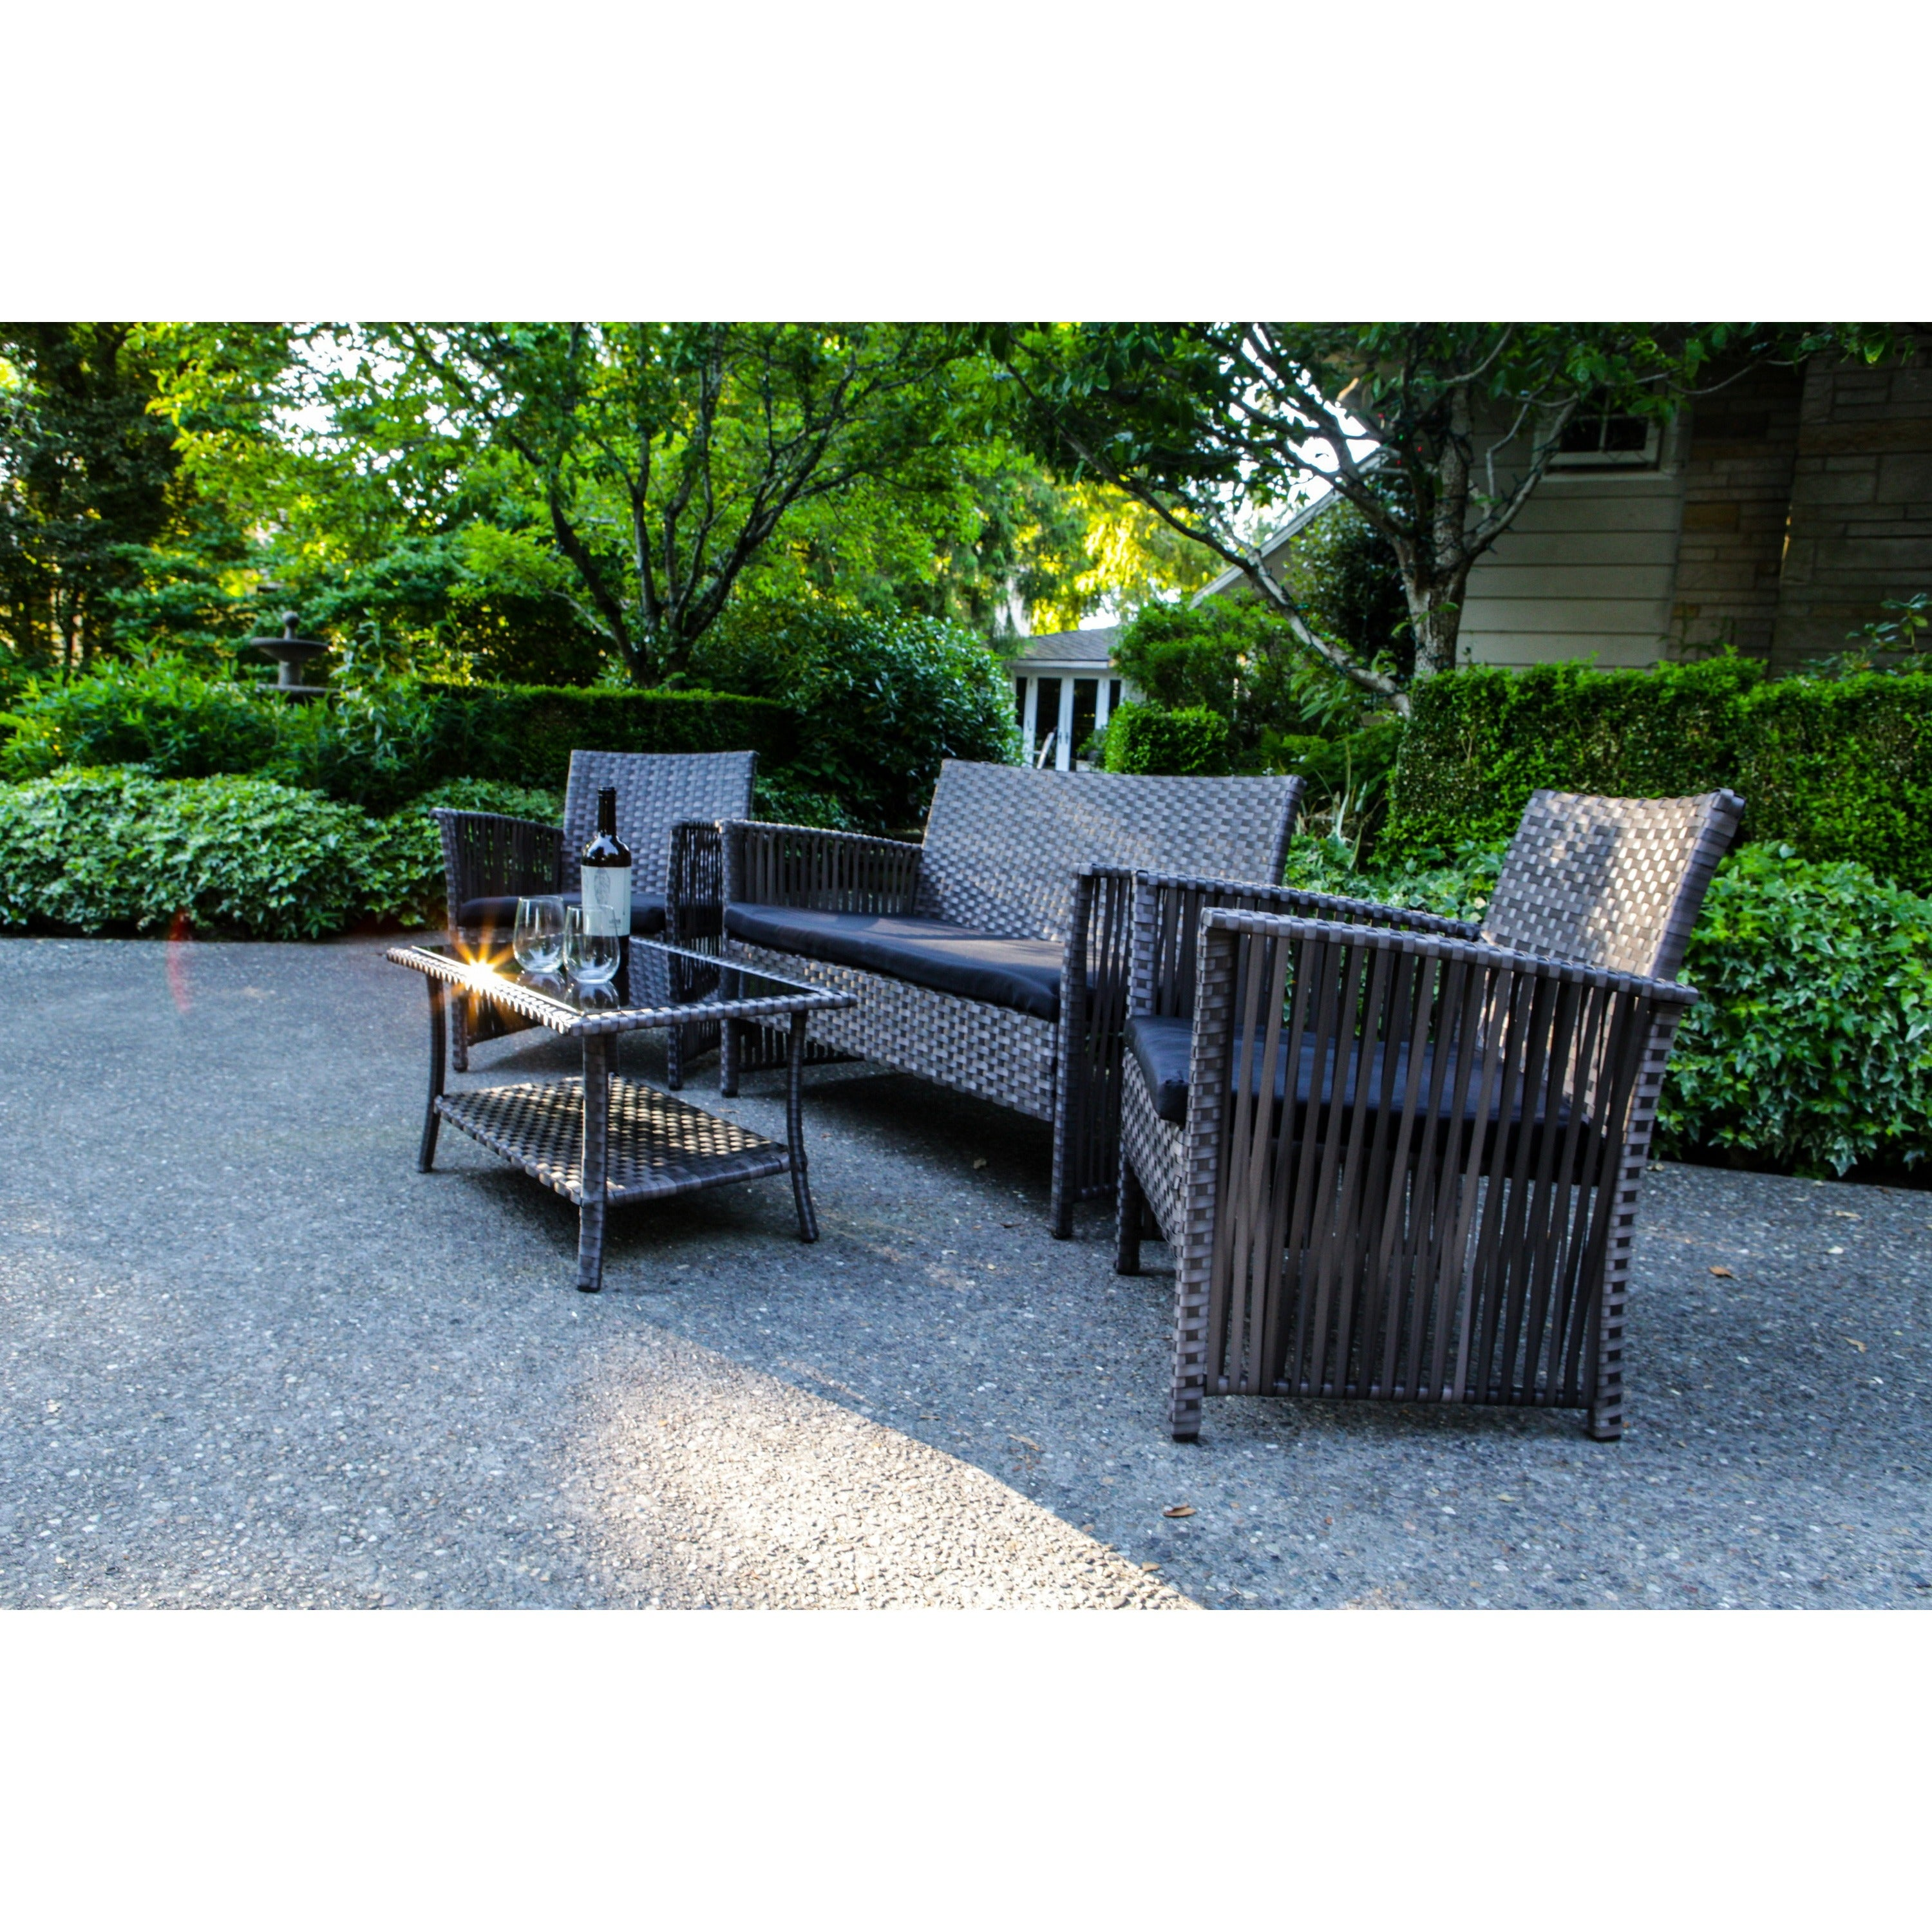 Sol Siesta Manhattan Beach Collection 4 Piece Cushioned Resin Wicker  Outdoor Patio Set   Free Shipping Today   Overstock   19153895